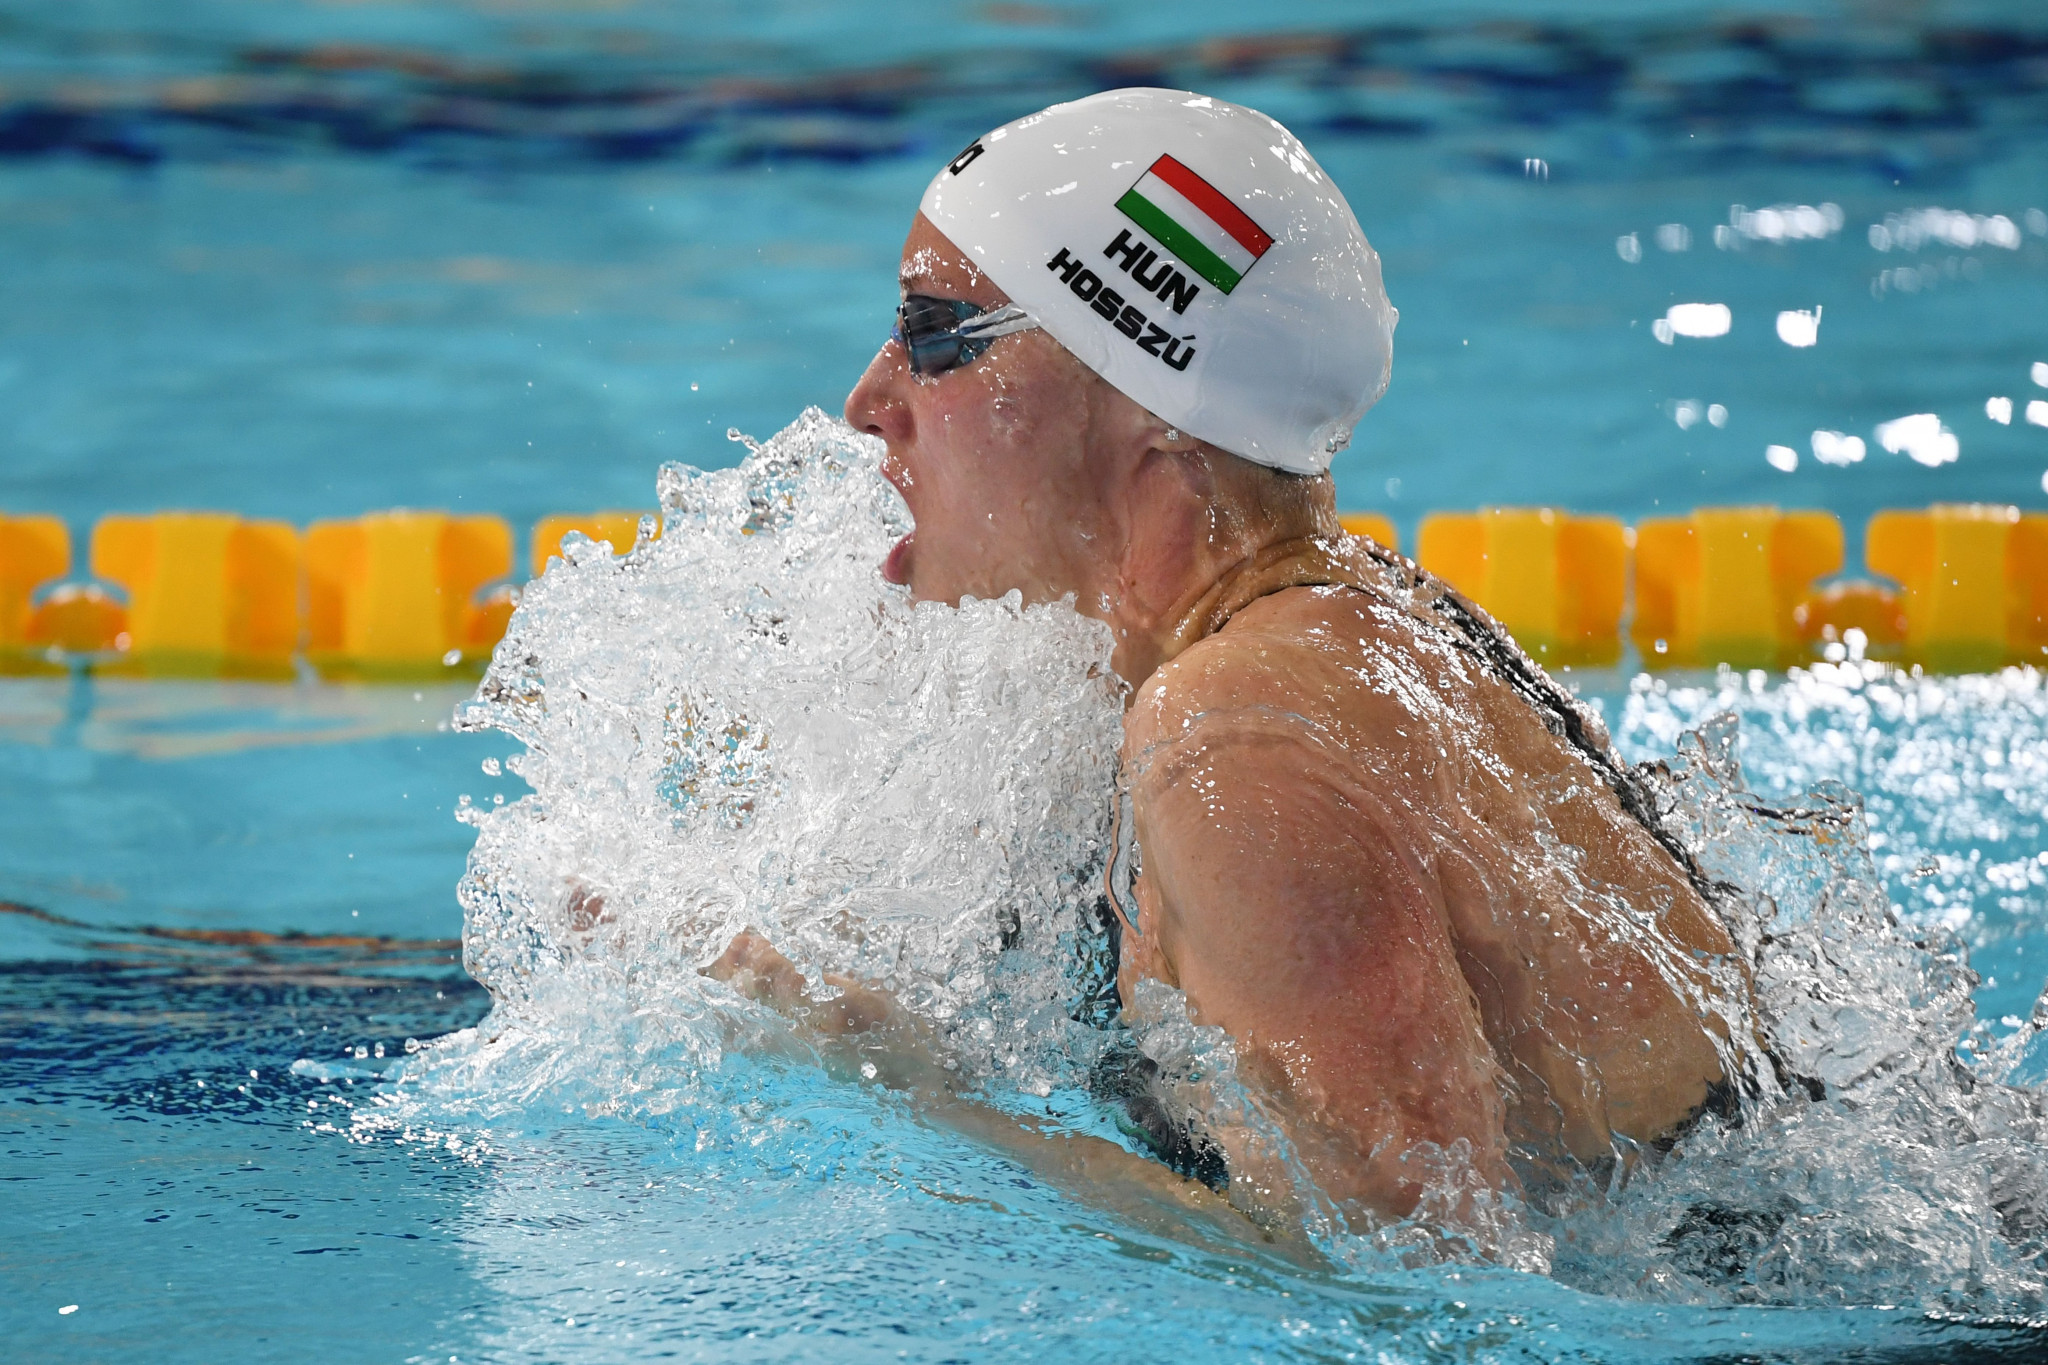 Katinka Hosszú of Hungary won two golds each on the last day of the FINA Champions Swim Series ©Getty Images